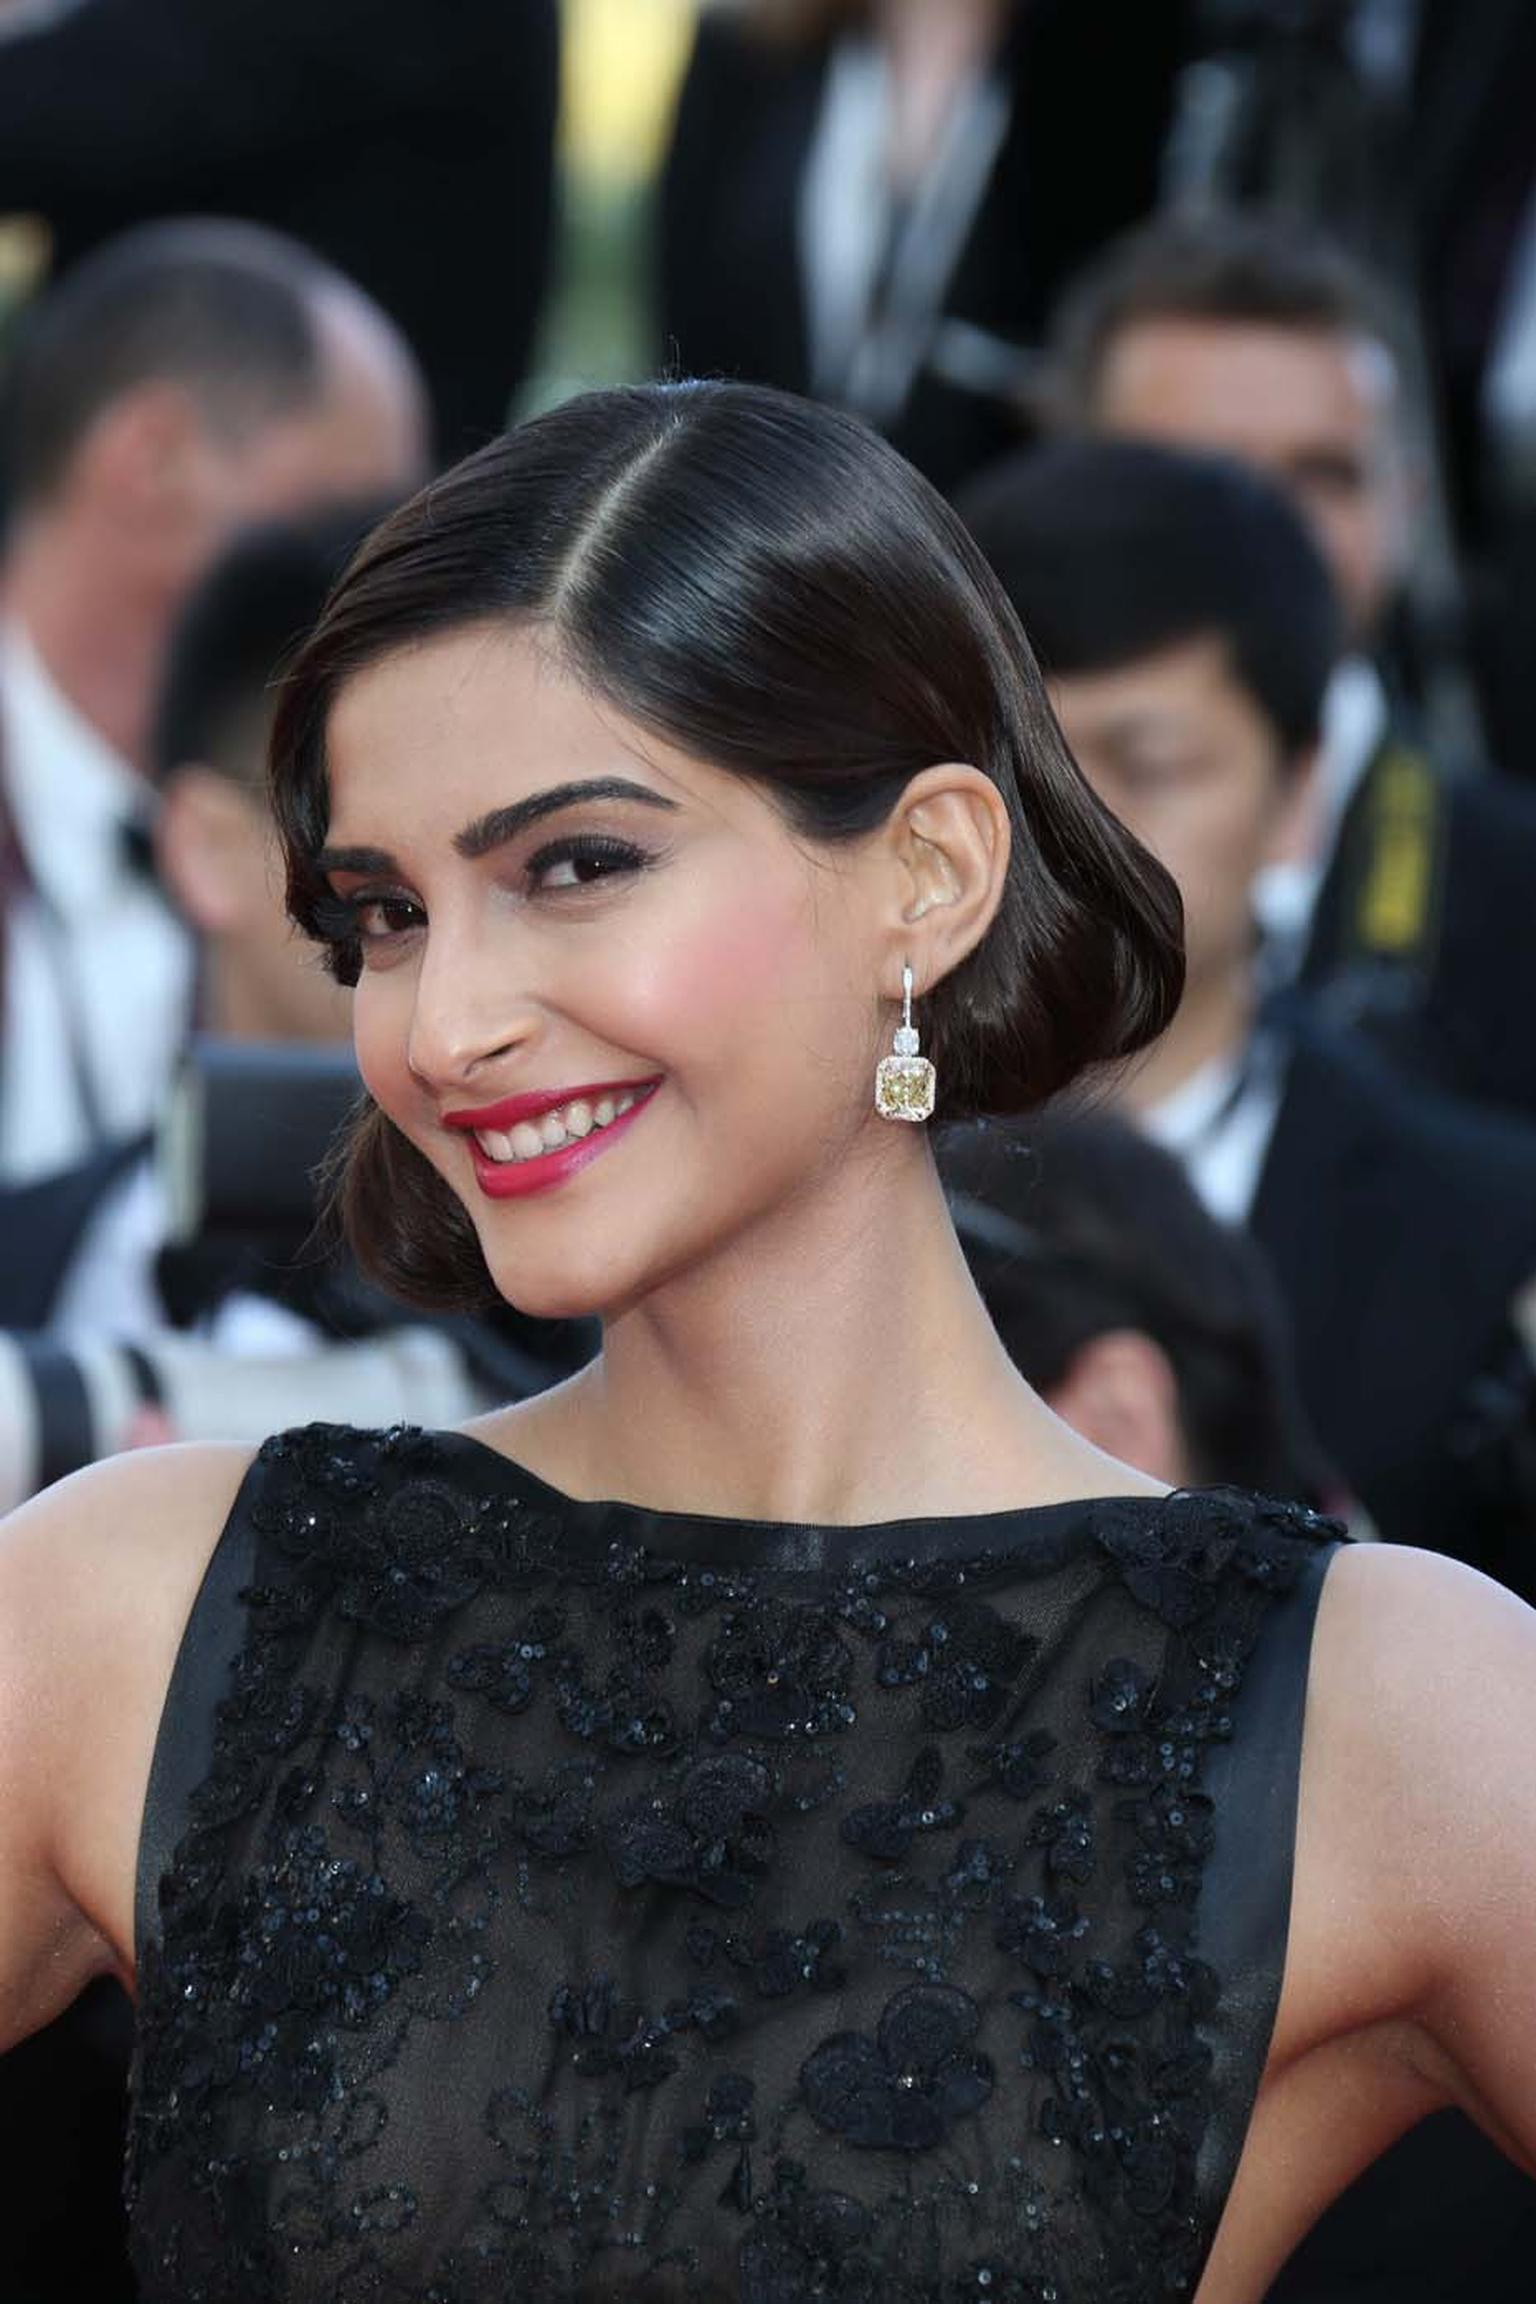 Sonam Kapoor wore Chopard earrings in yellow gold set with emerald-cut yellow diamonds (20cts) as well as cushion-cut and brilliant-cut diamonds.